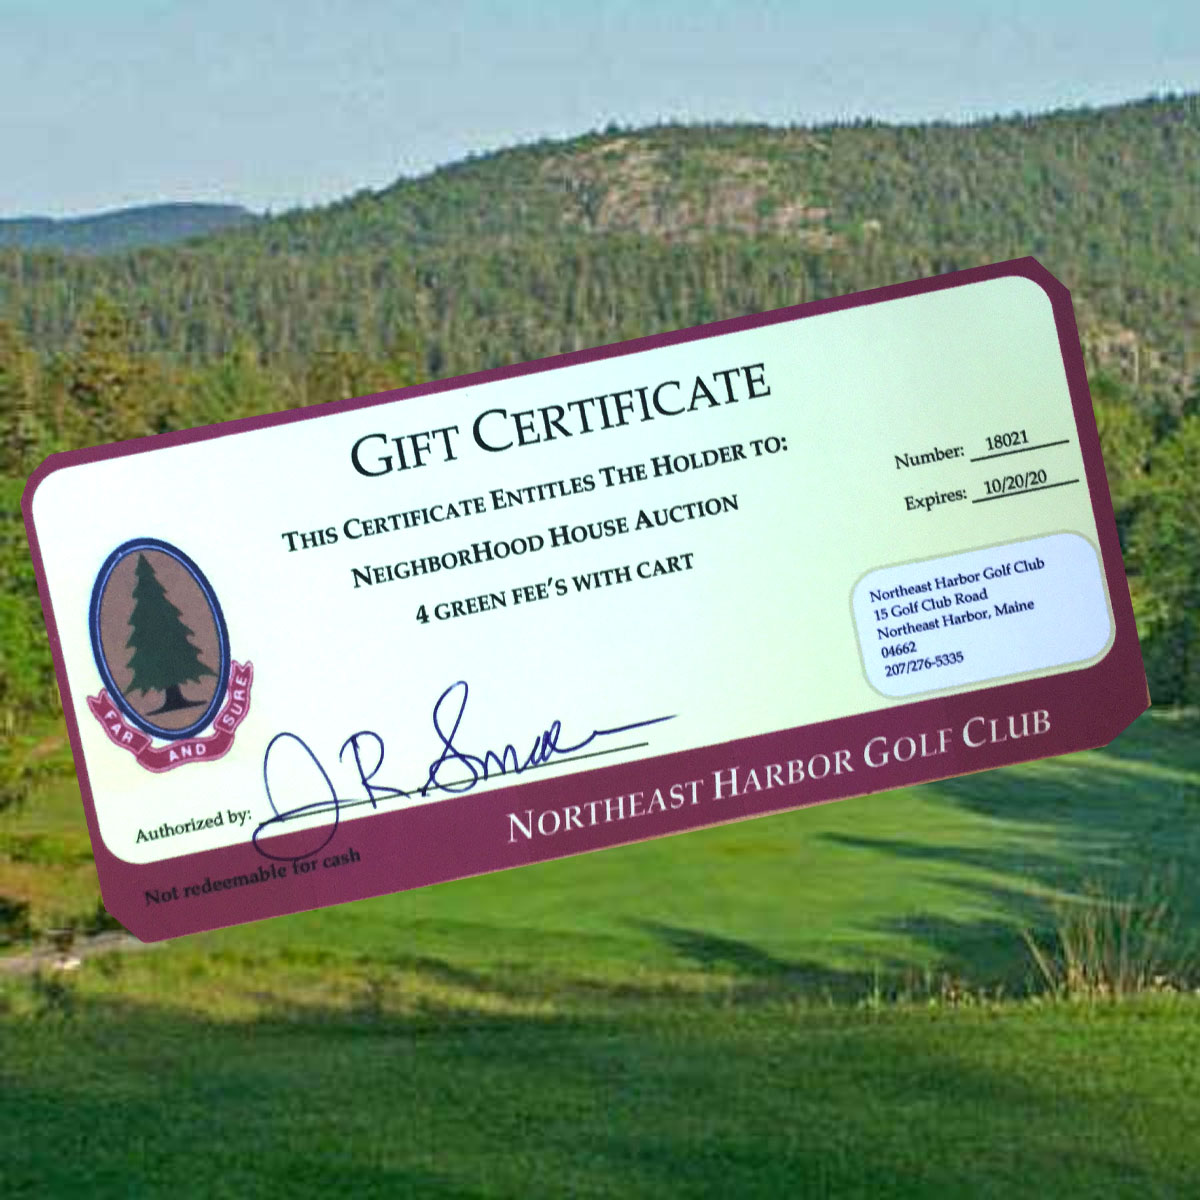 Golf Outing - Fore! The NEH Golf Club has generously provided this certificate for 4 greens fees and with cart. The perfect way to spend a late summer afternoon or entertain guests! Certificate not valid July or August.